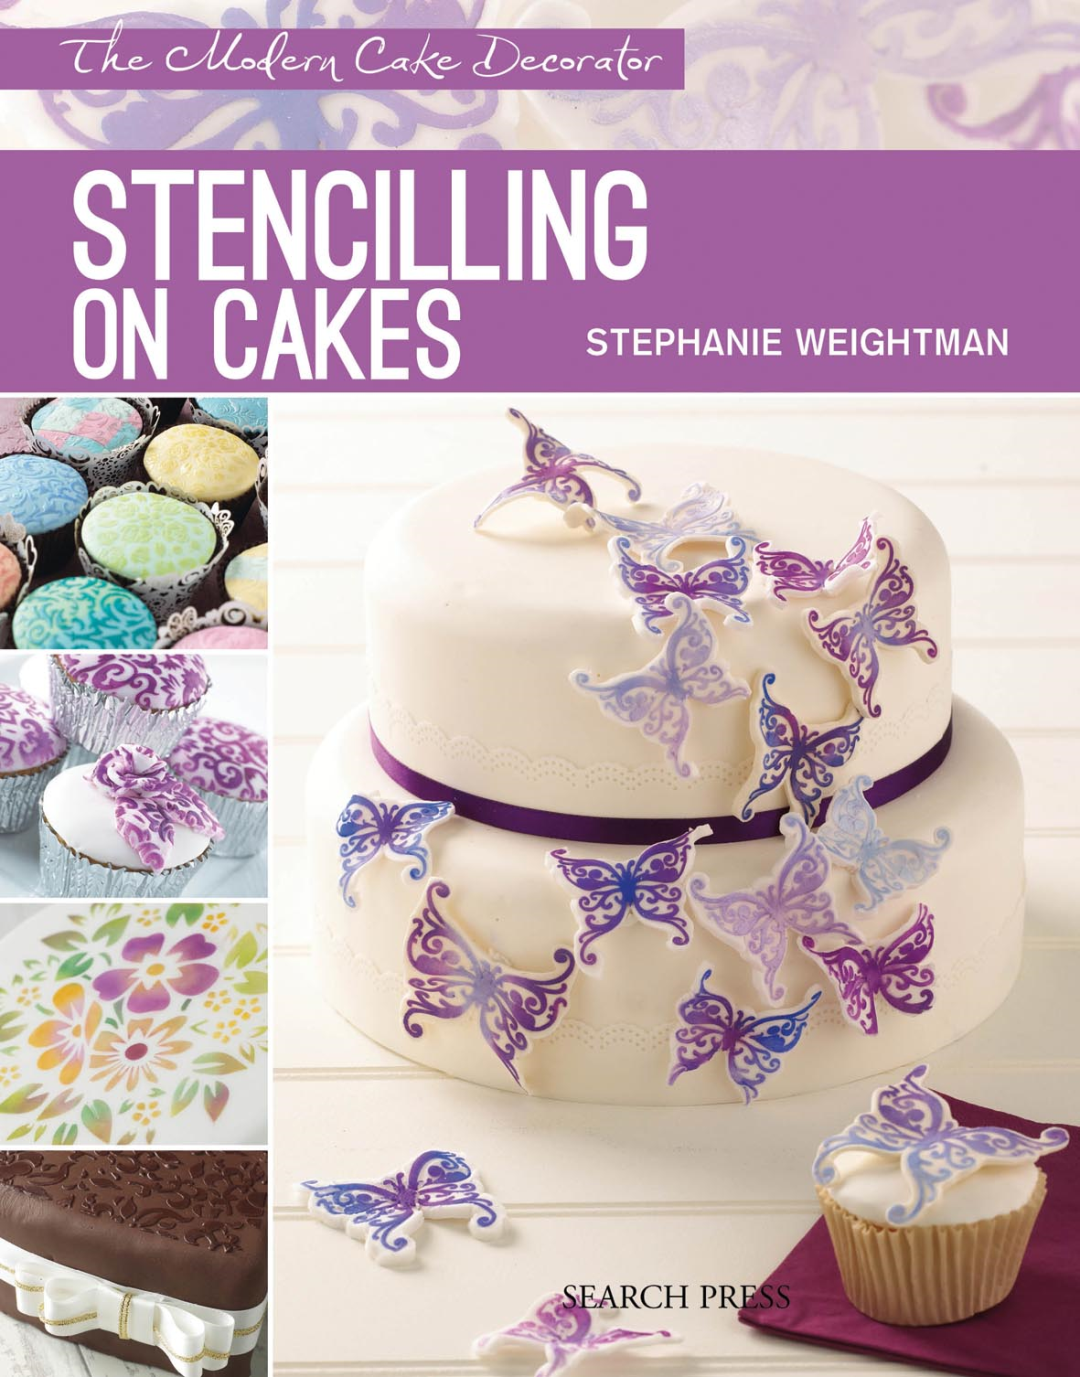 The-Modern-Cake-Decorator-Stencilling-on-Cakes